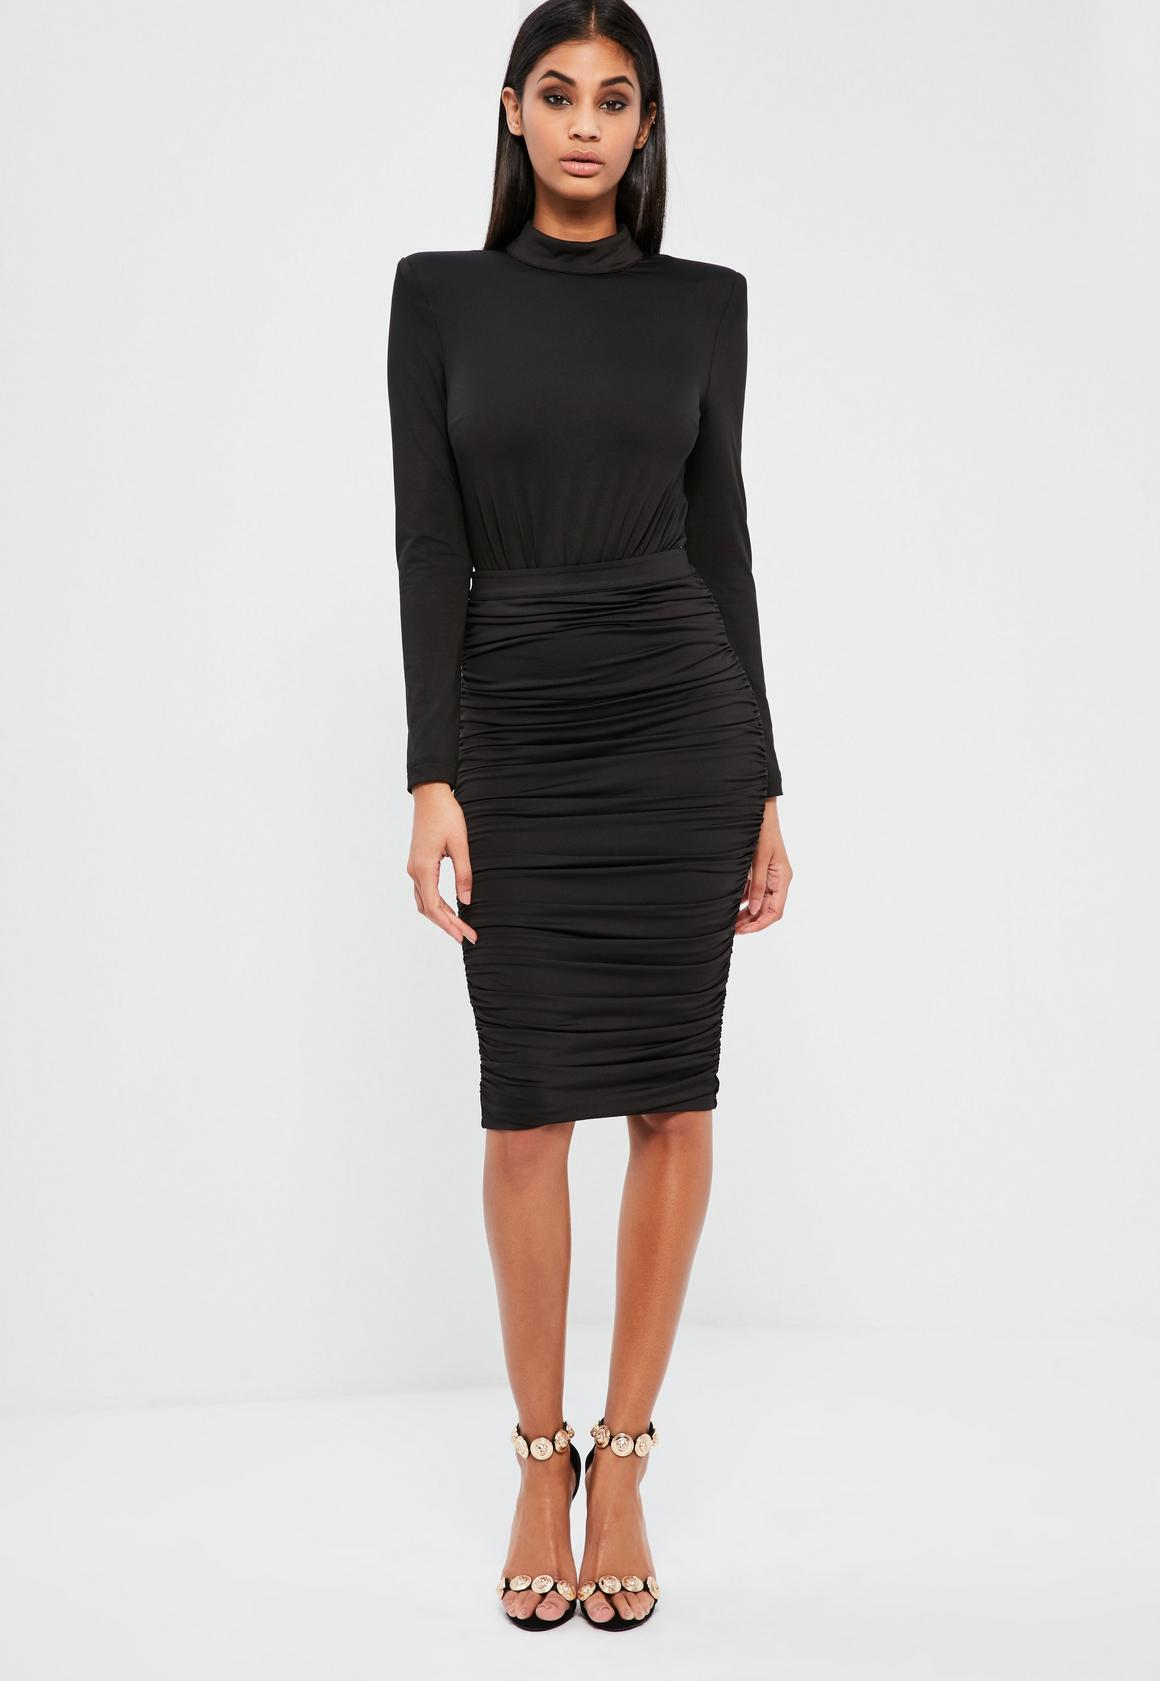 Peace + Love Black Ruched Midi Skirt | Missguided Ireland